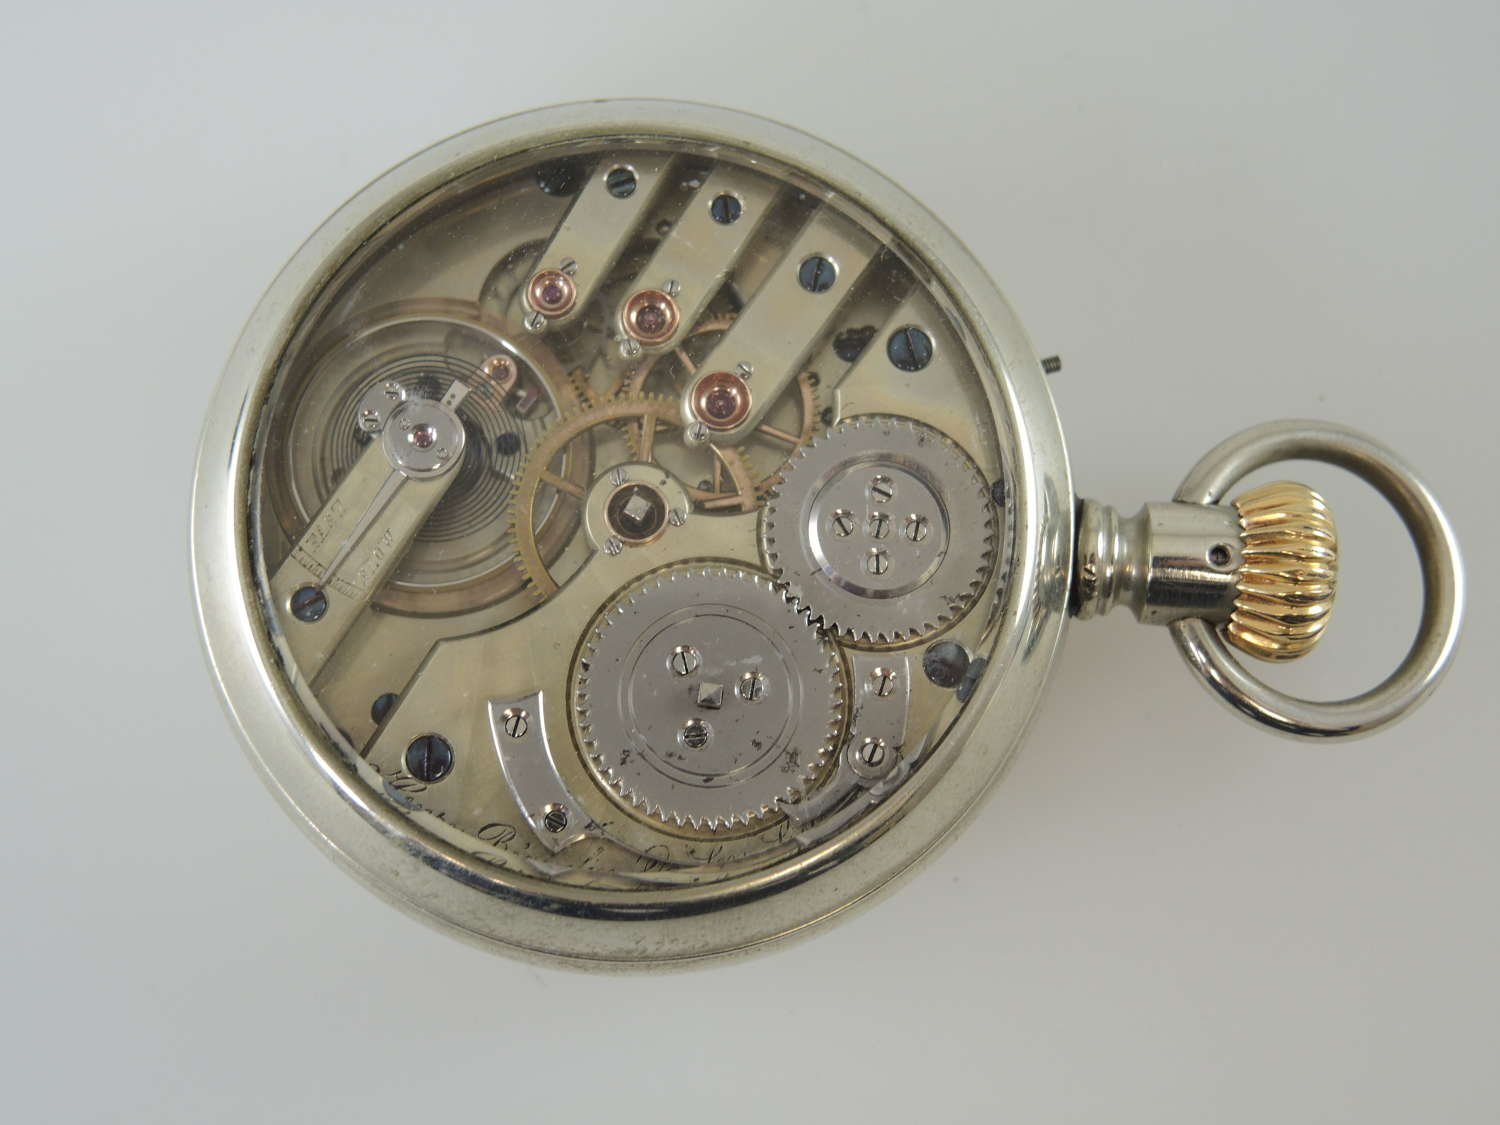 Top quality display case pocket watch by Hry Beguelin c1900